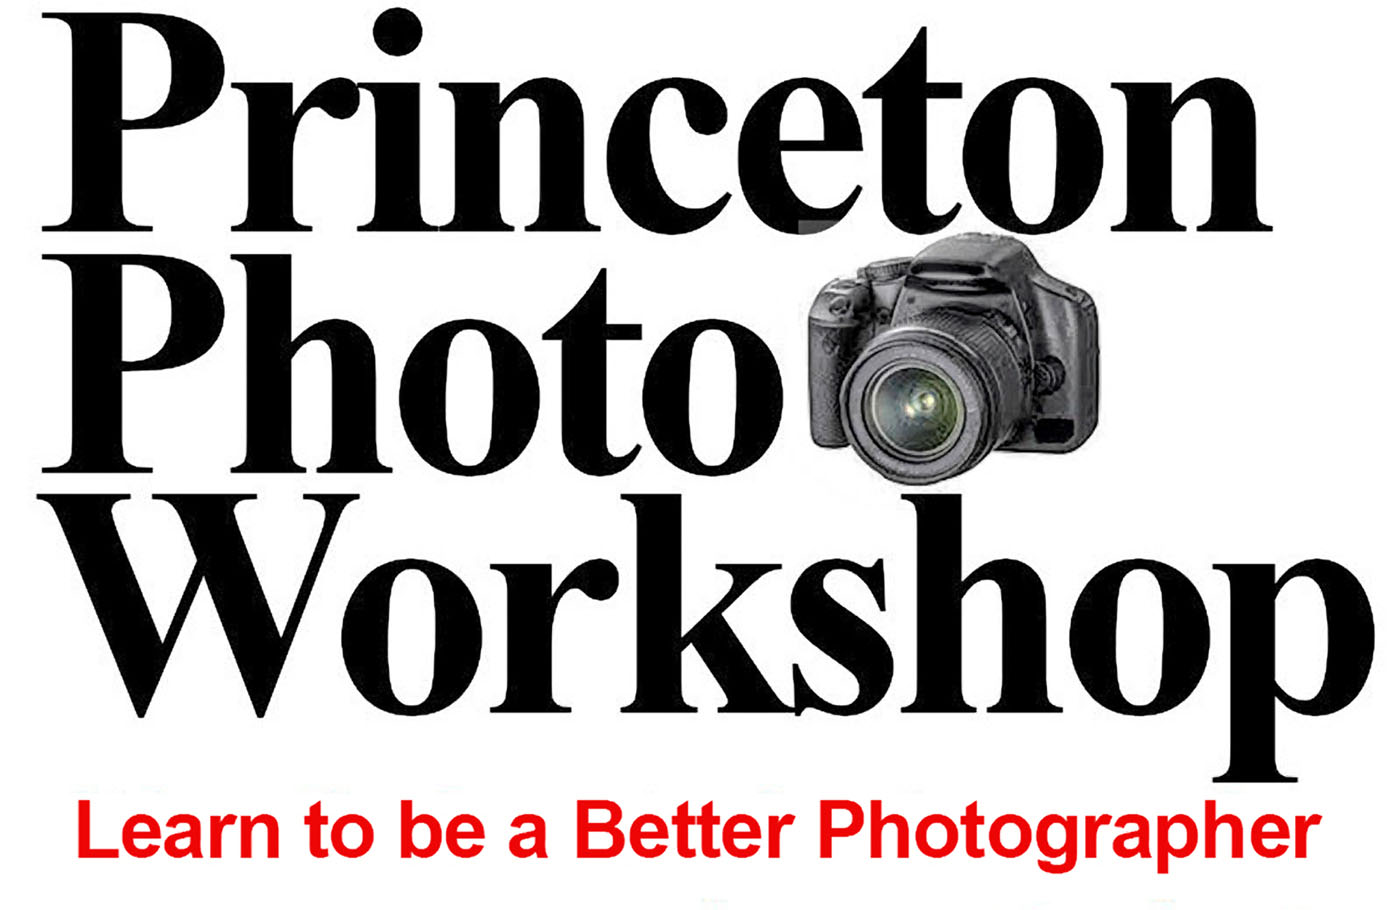 Princeton Photo Workshop